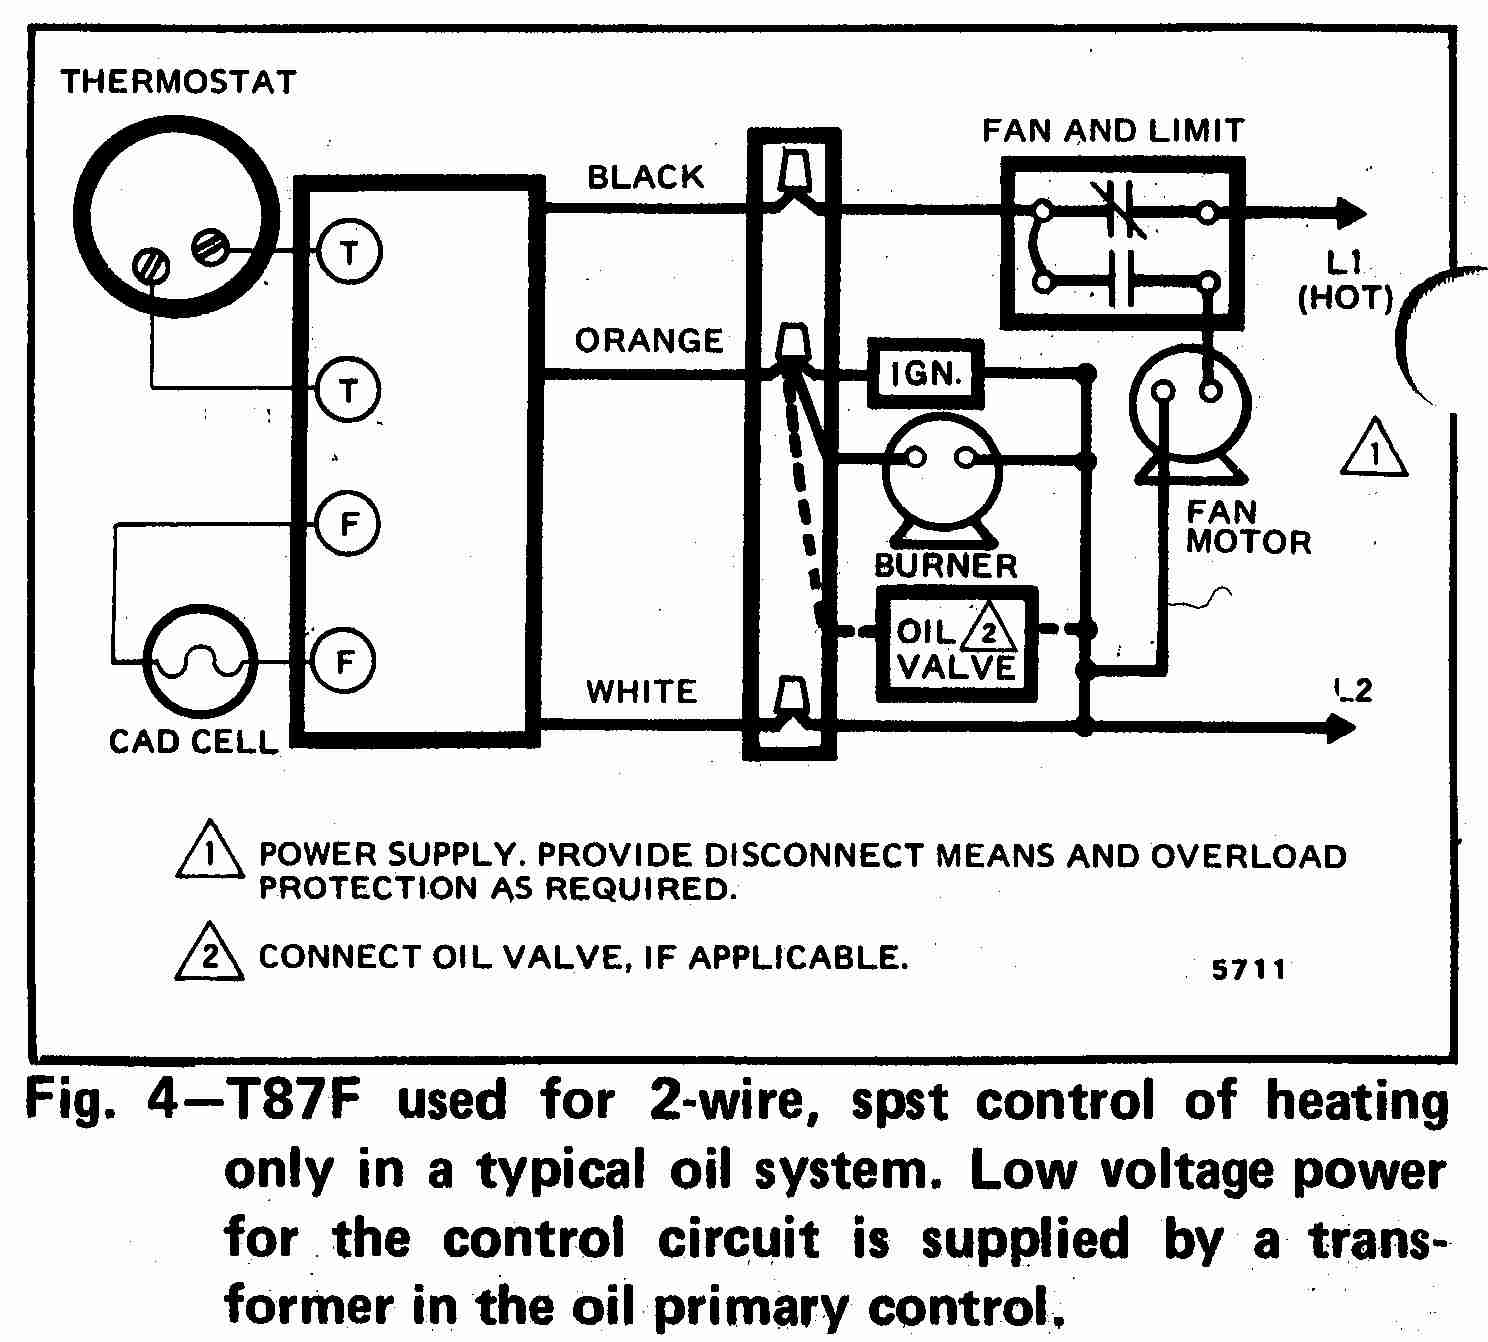 typical hot water heater wiring schematic library wiring diagramheaters wiring diagram besides hot water heater thermostat wiring rheem water heater wiring diagram room thermostat